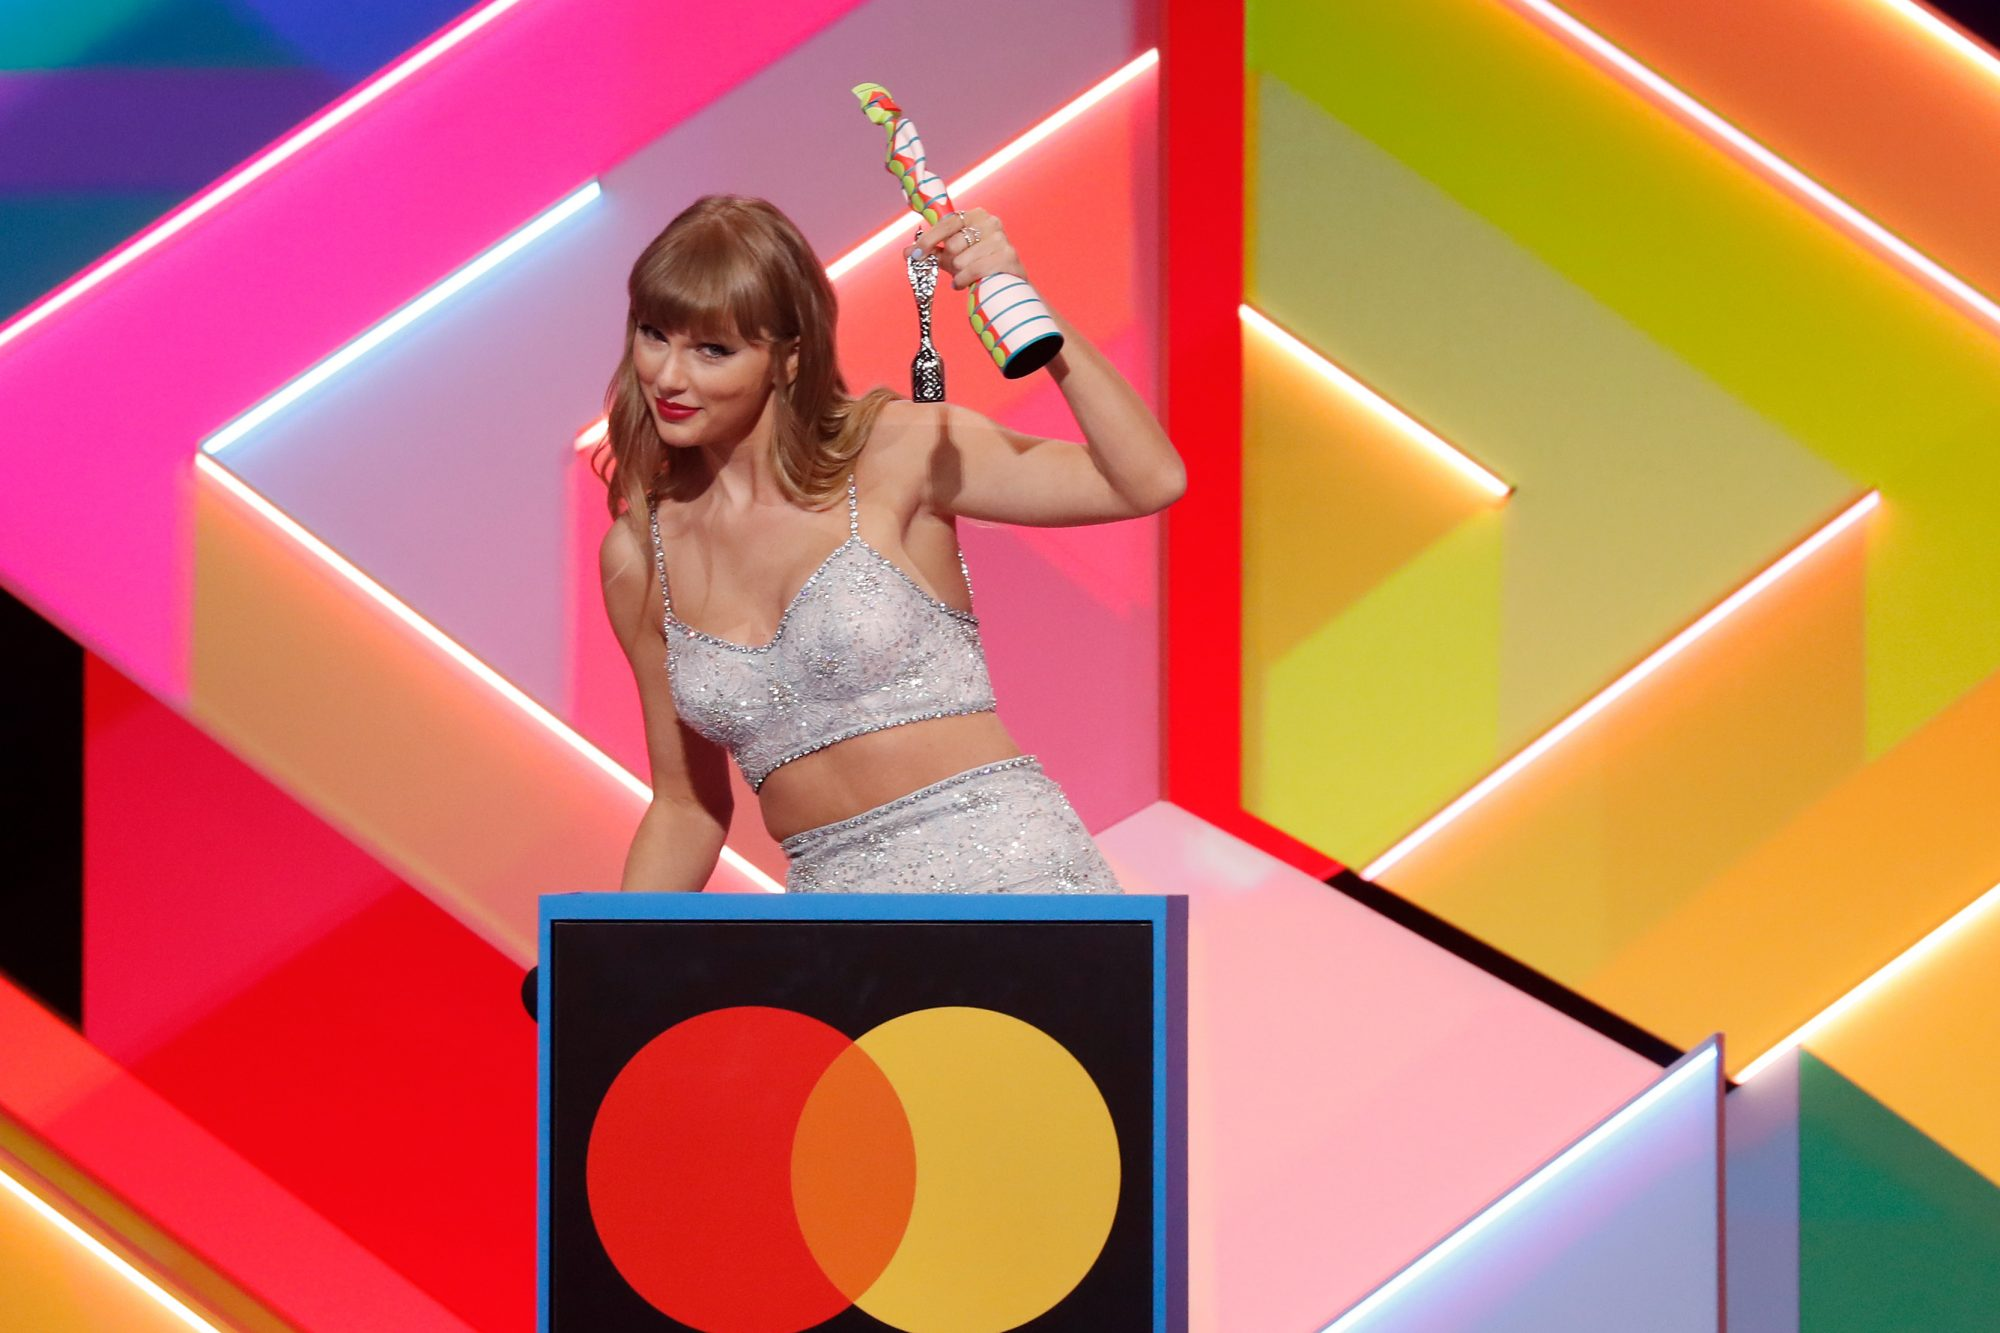 Taylor Swift wins the Global icon Award during The BRIT Awards 2021